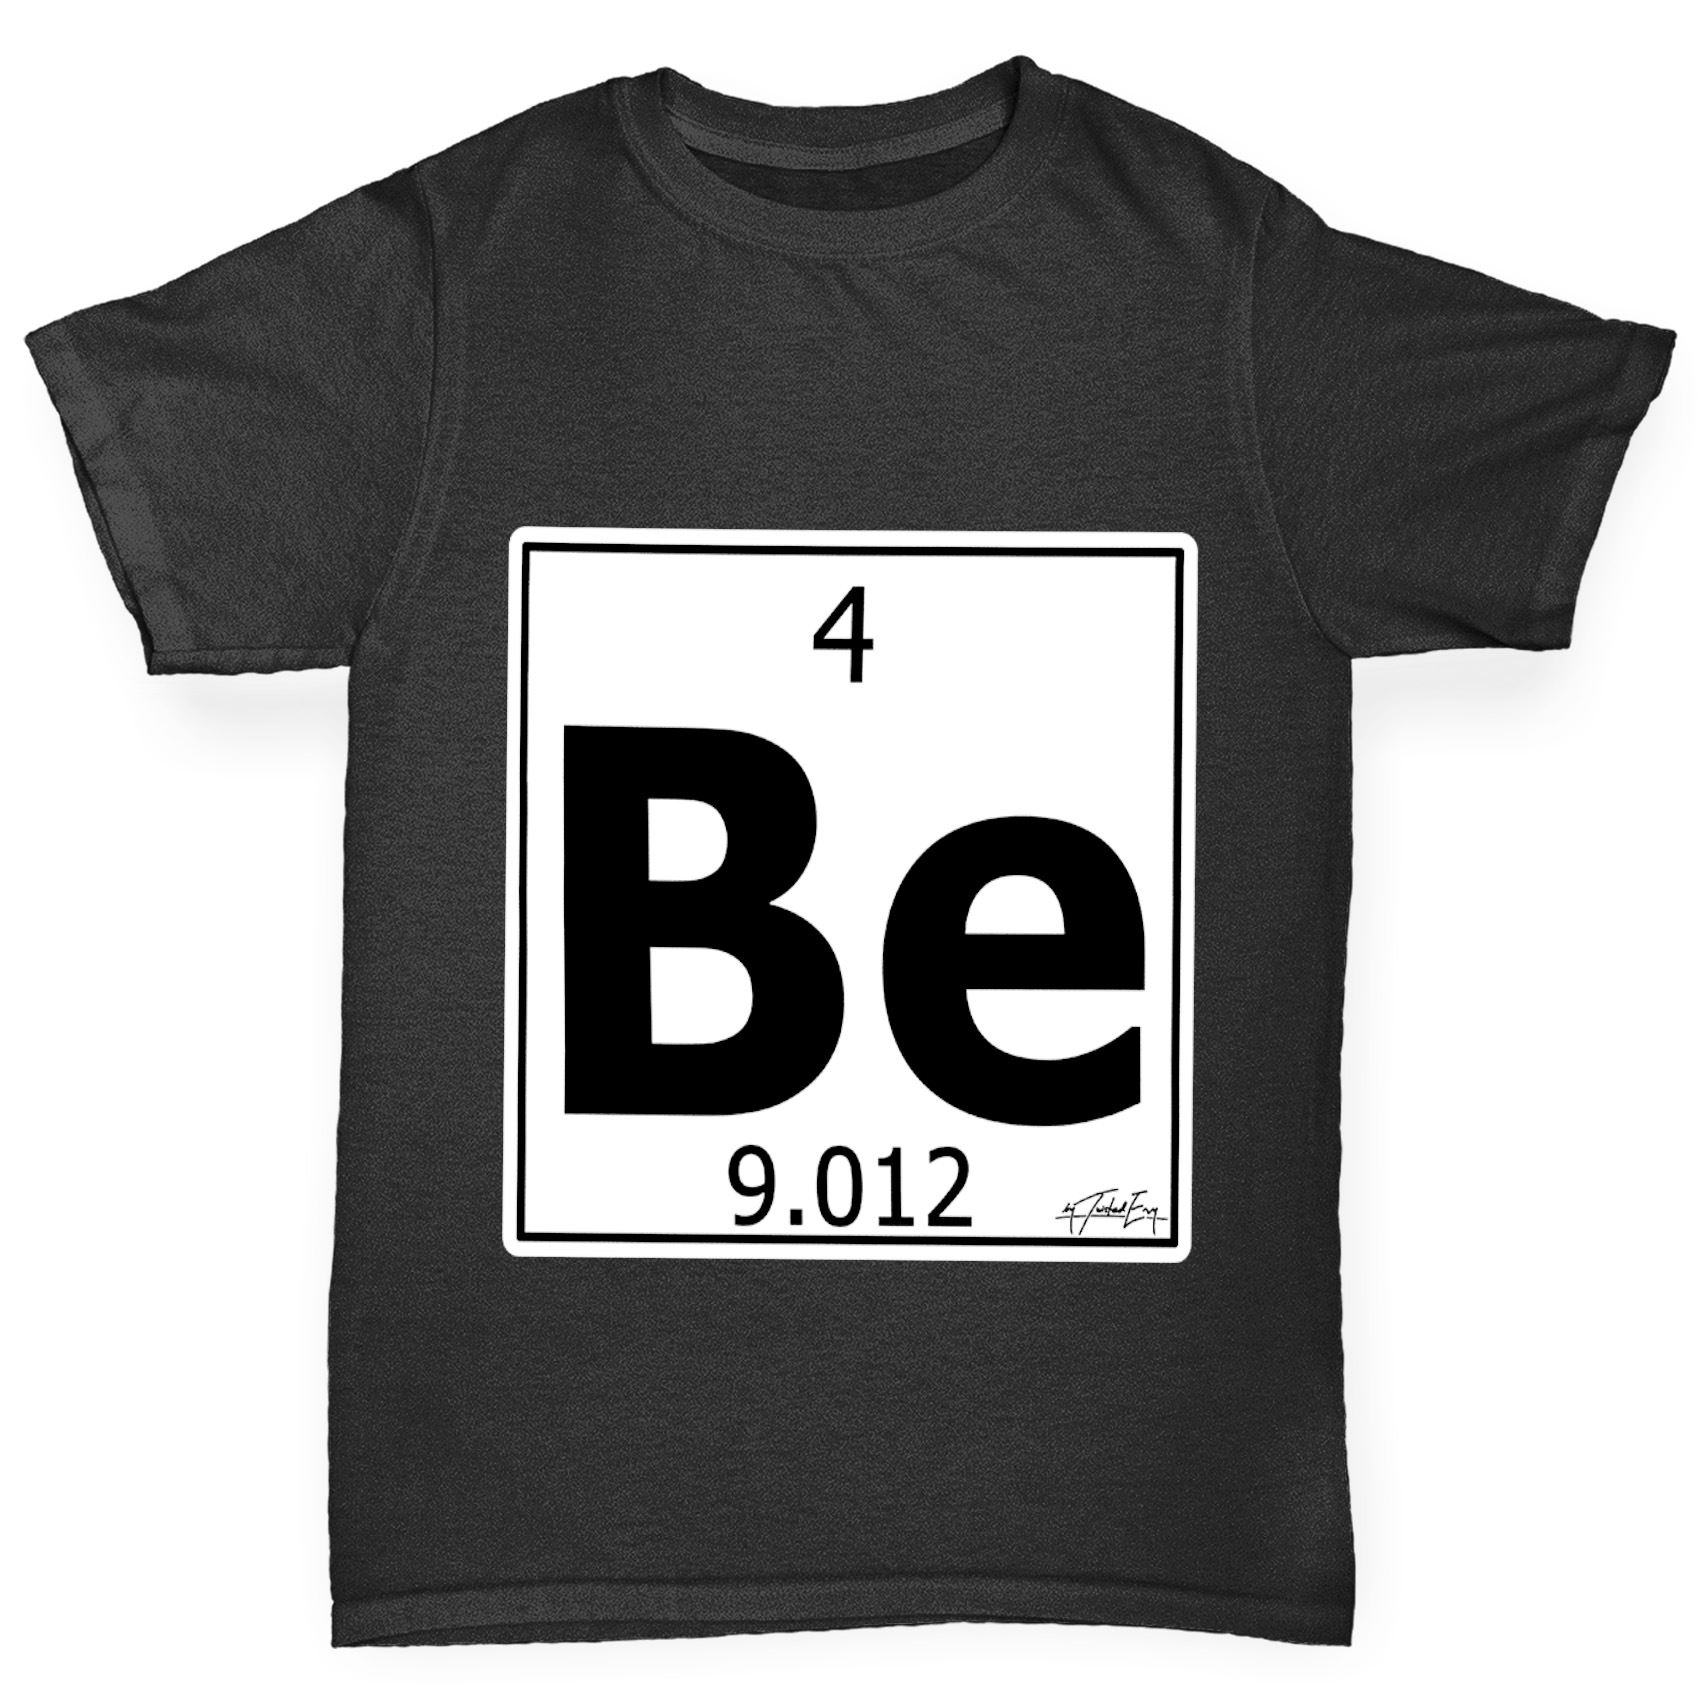 Twisted envy boys periodic table element be beryllium t shirt ebay twisted envy chicos elemento de tabla periodica se urtaz Image collections